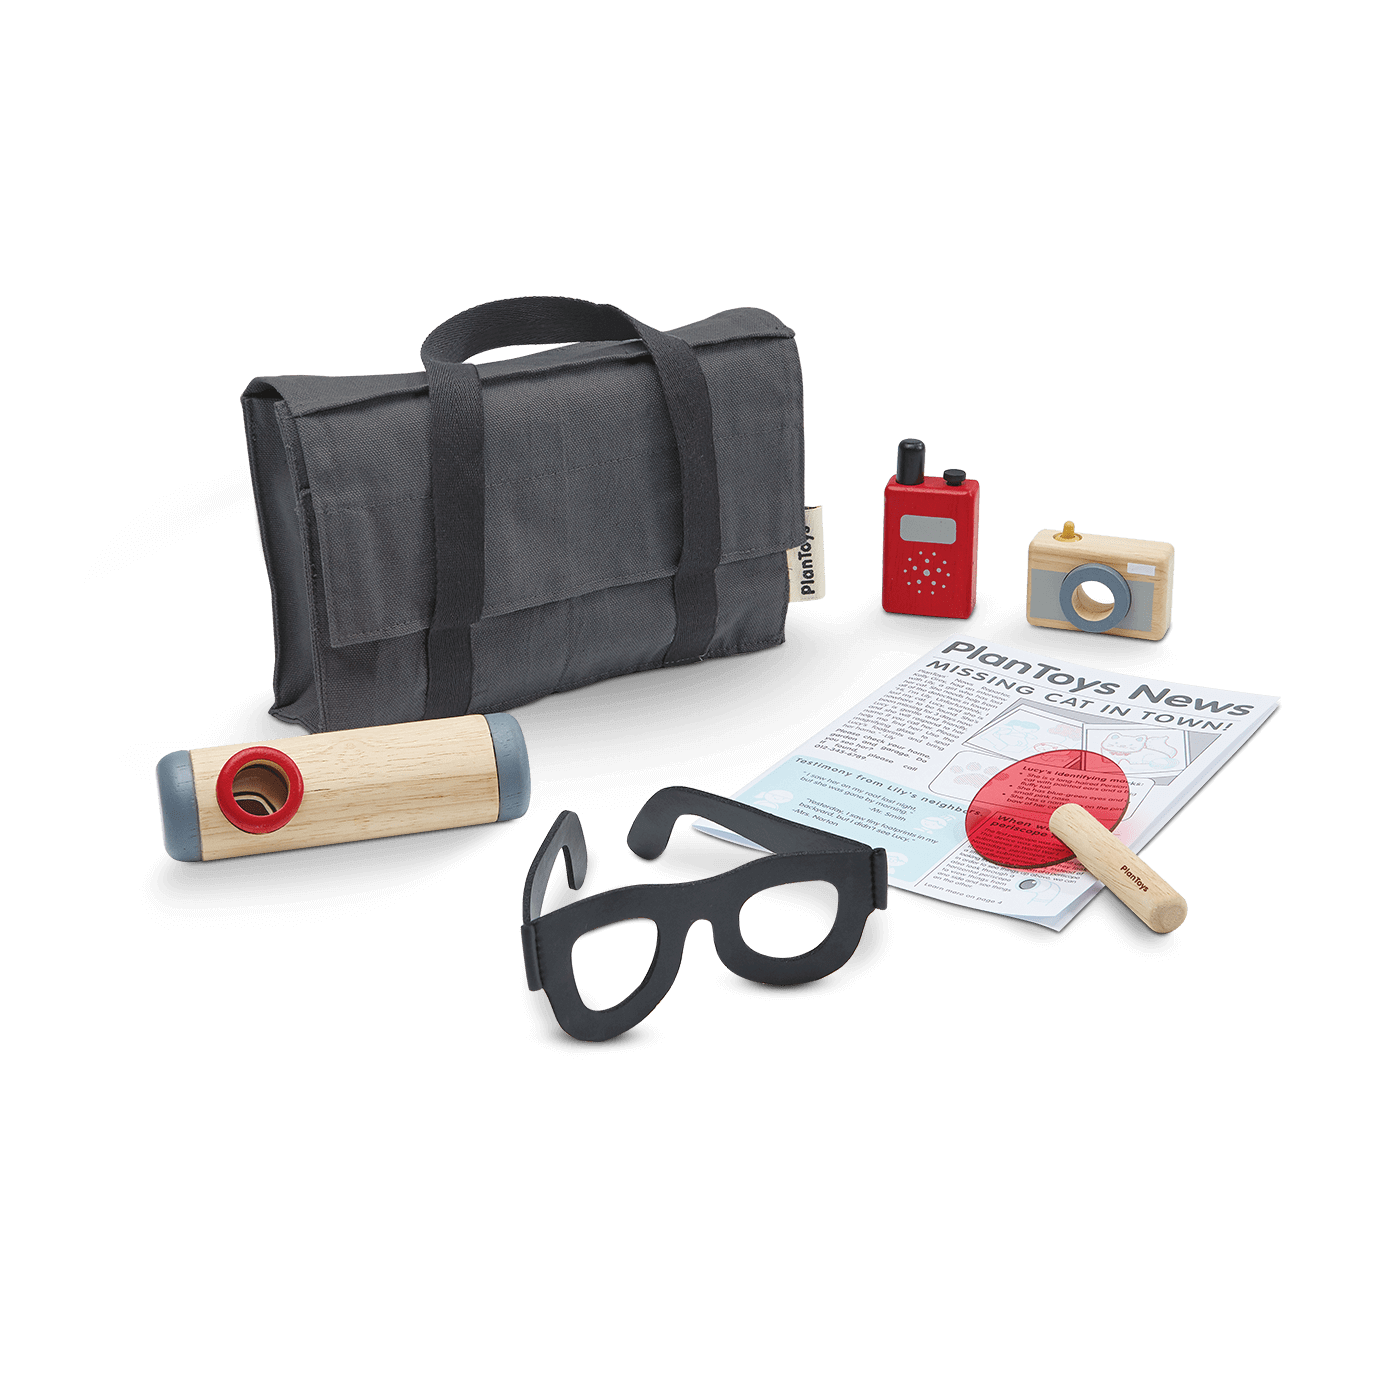 3701_PlanToys_DETECTIVE_SET_Pretend_Play_Imagination_Creative_Language_and_Communications_Social_Coordination_3yrs_Wooden_toys_Education_toys_Safety_Toys_Non-toxic_0.png